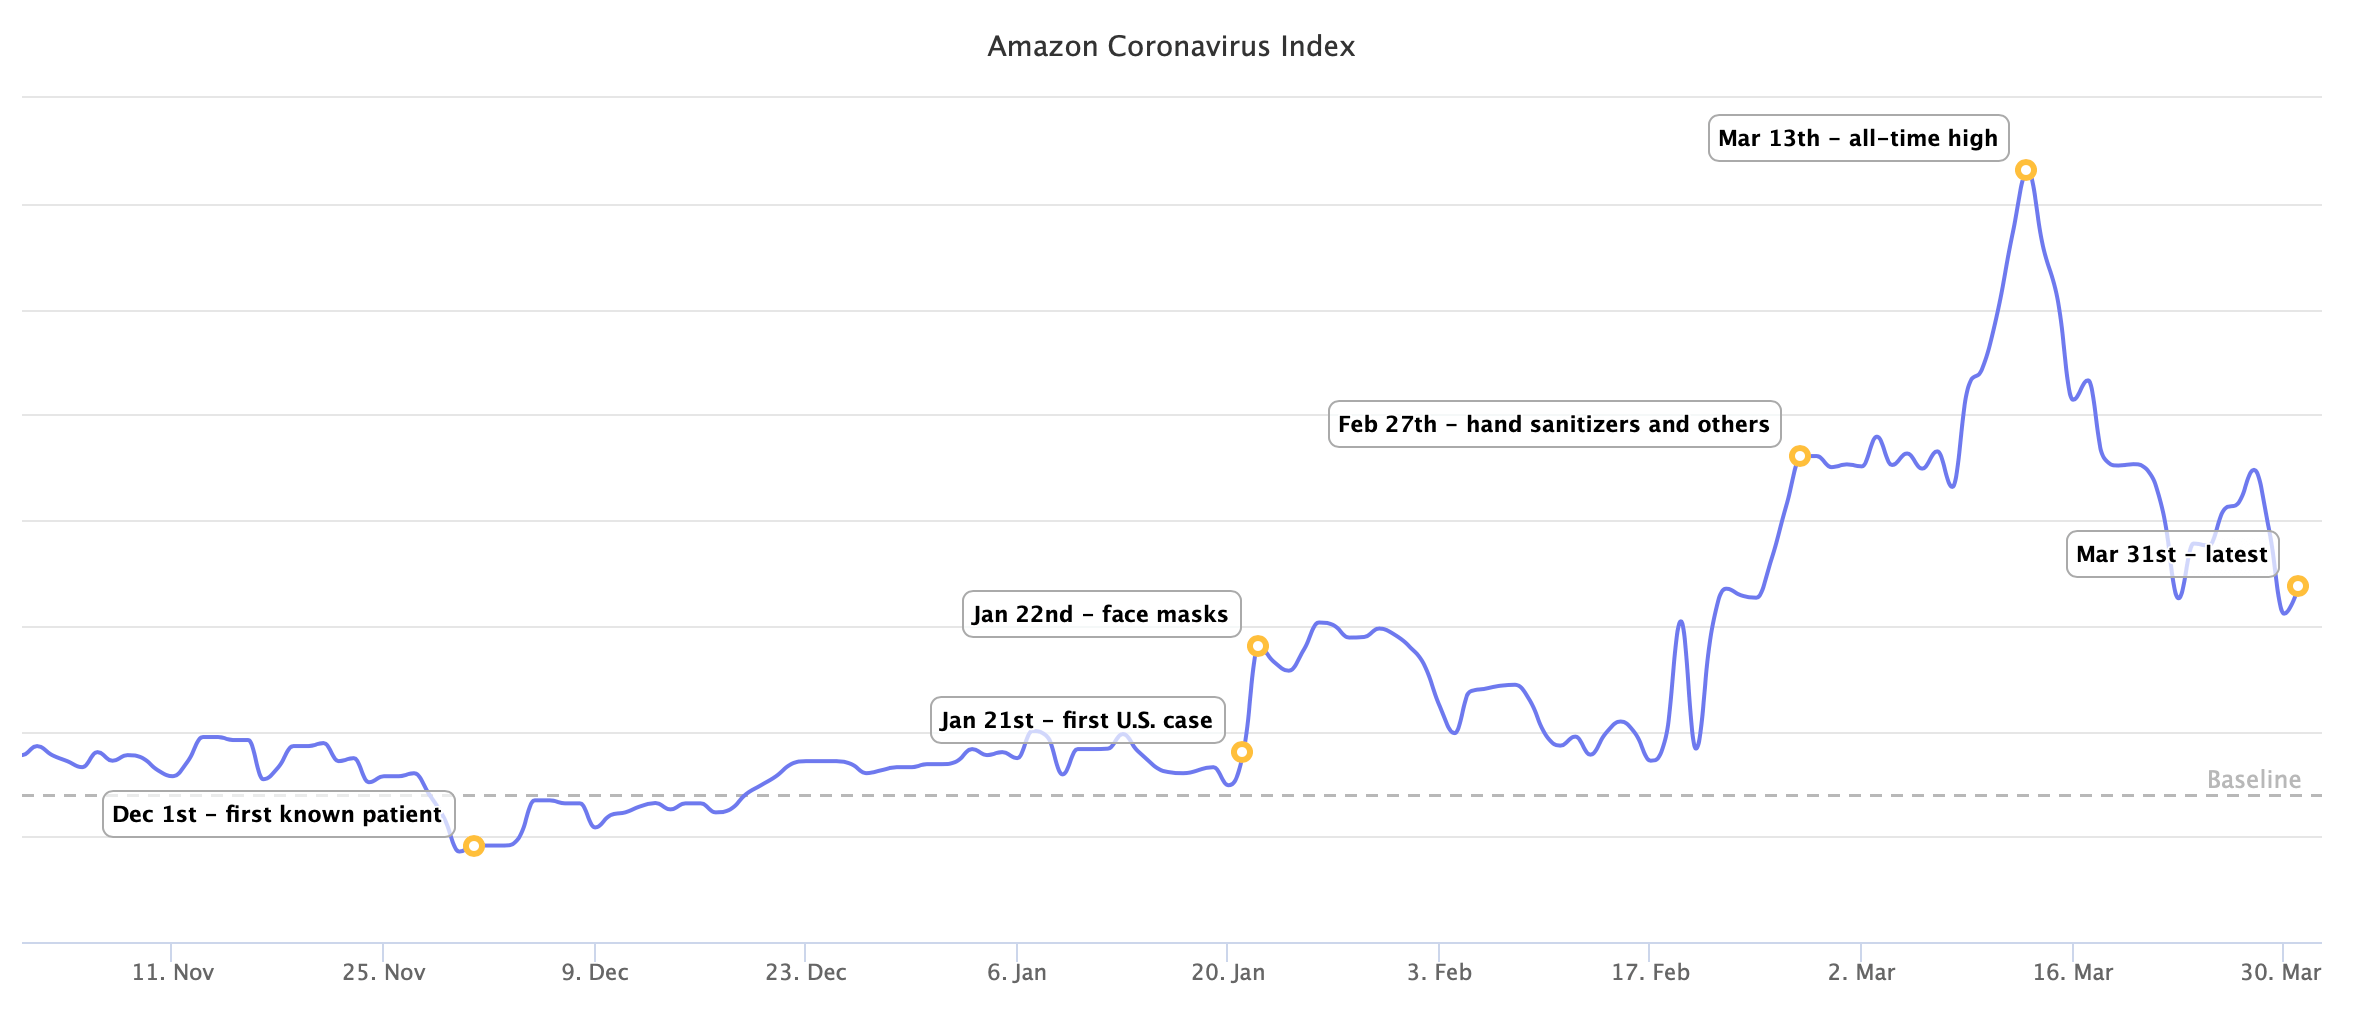 Amazon Coronavirus Index